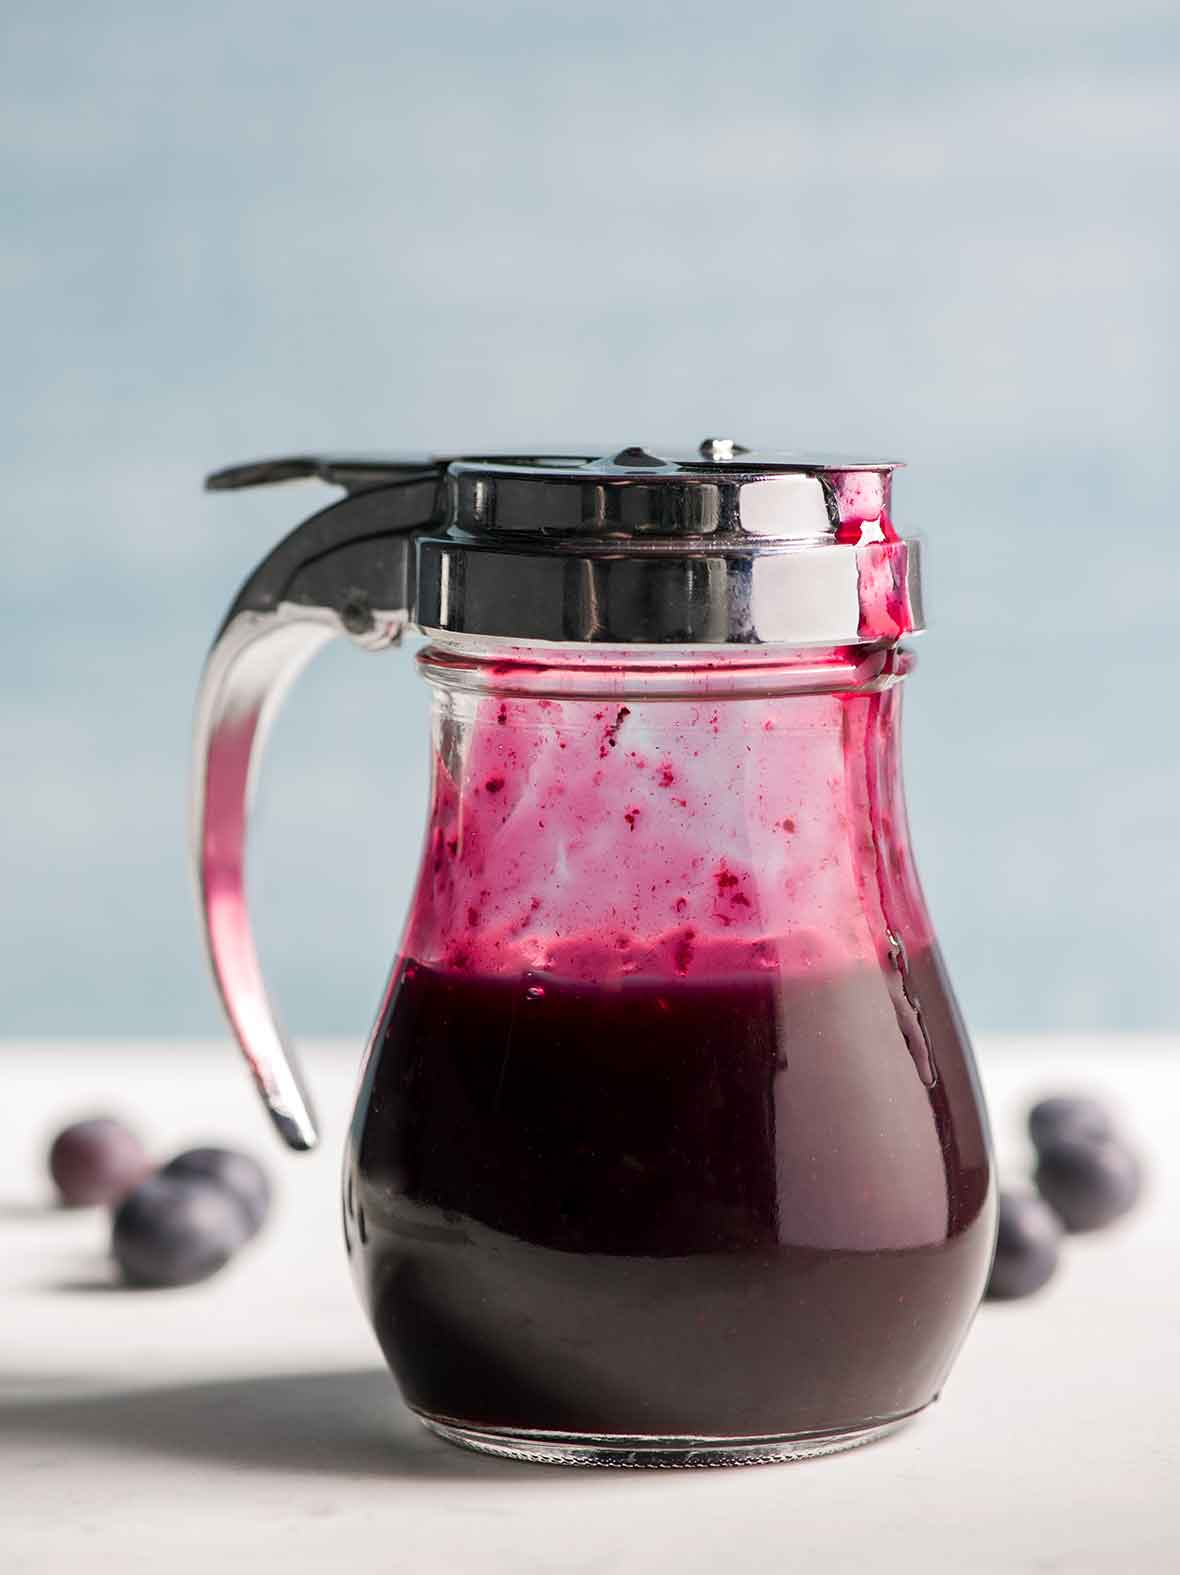 A diner-style dispenser half-filled with blueberry syrup.